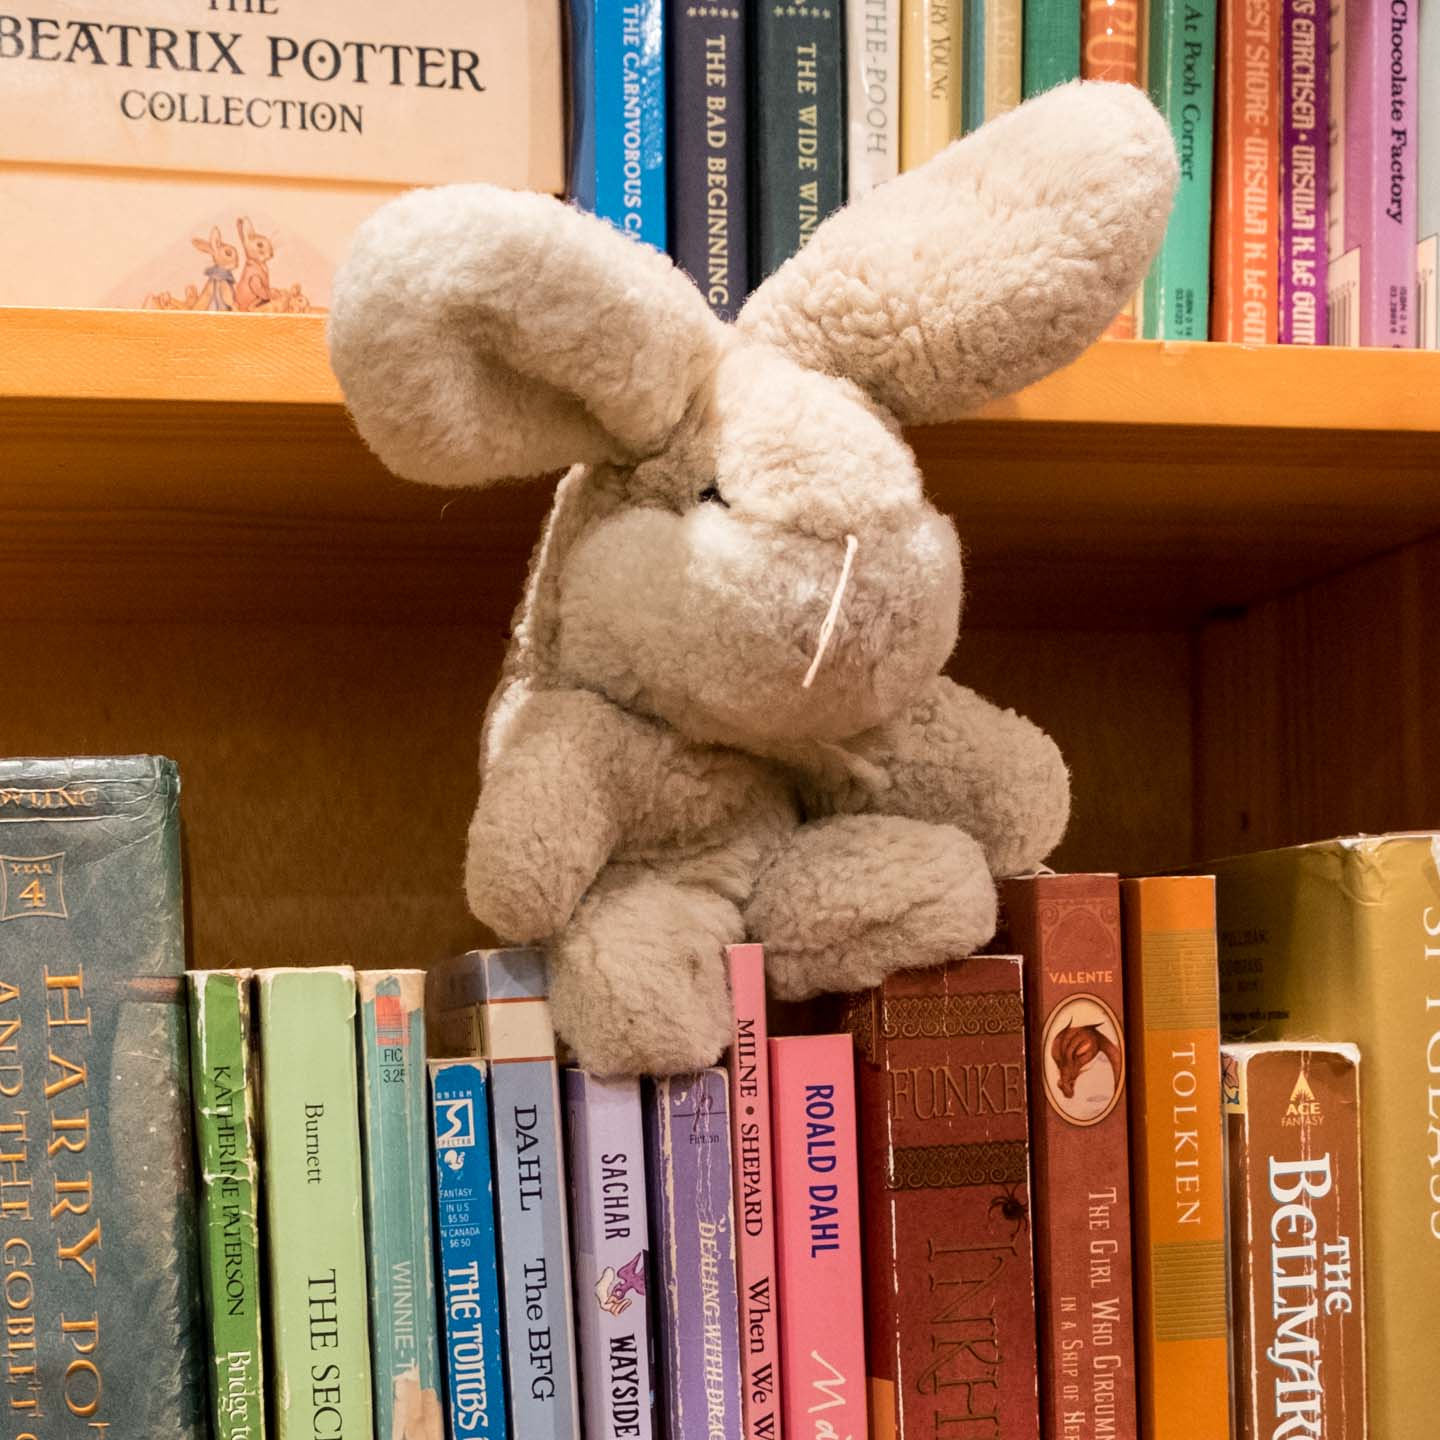 Well-loved white plush bunny sitting on top of children's books in rainbow order